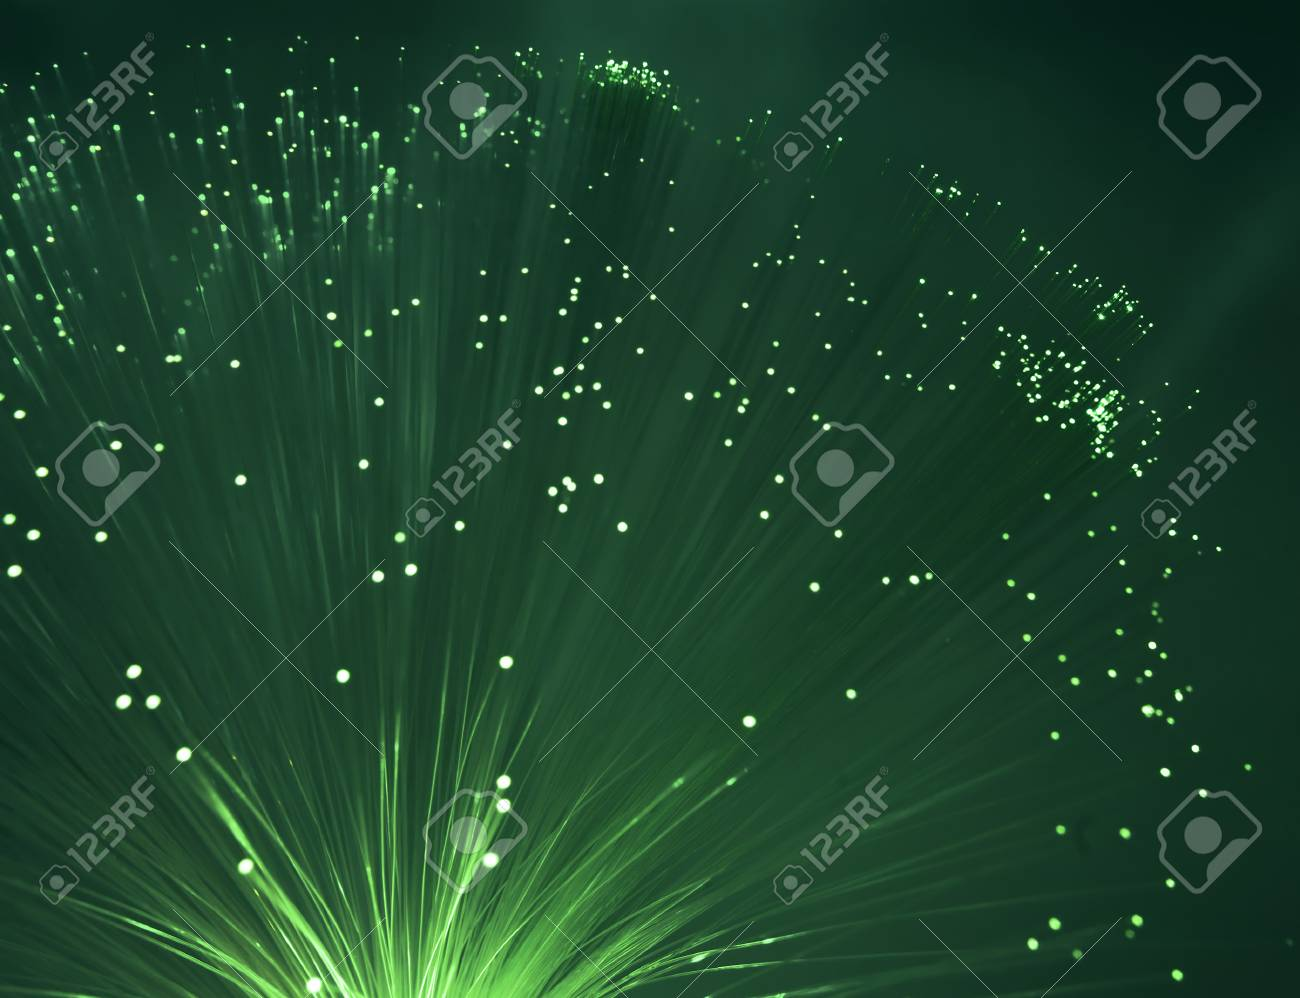 abstract Internet technology fiber optic background Stock Photo - 9812986